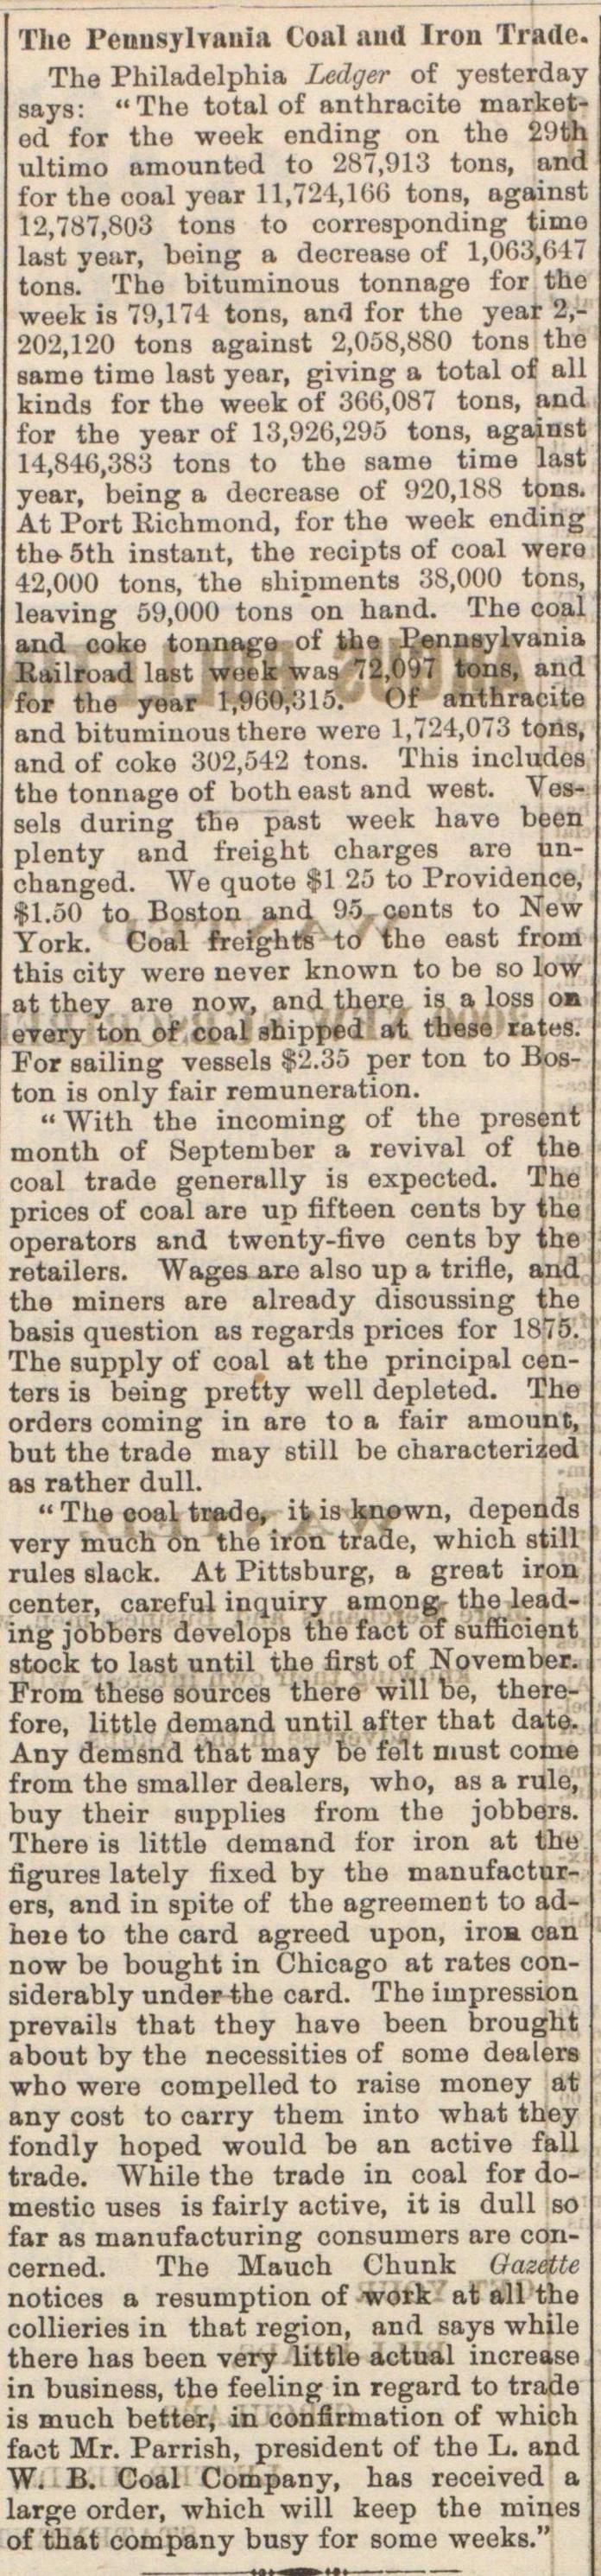 The Pennsylvania Coal And Iron Trade image